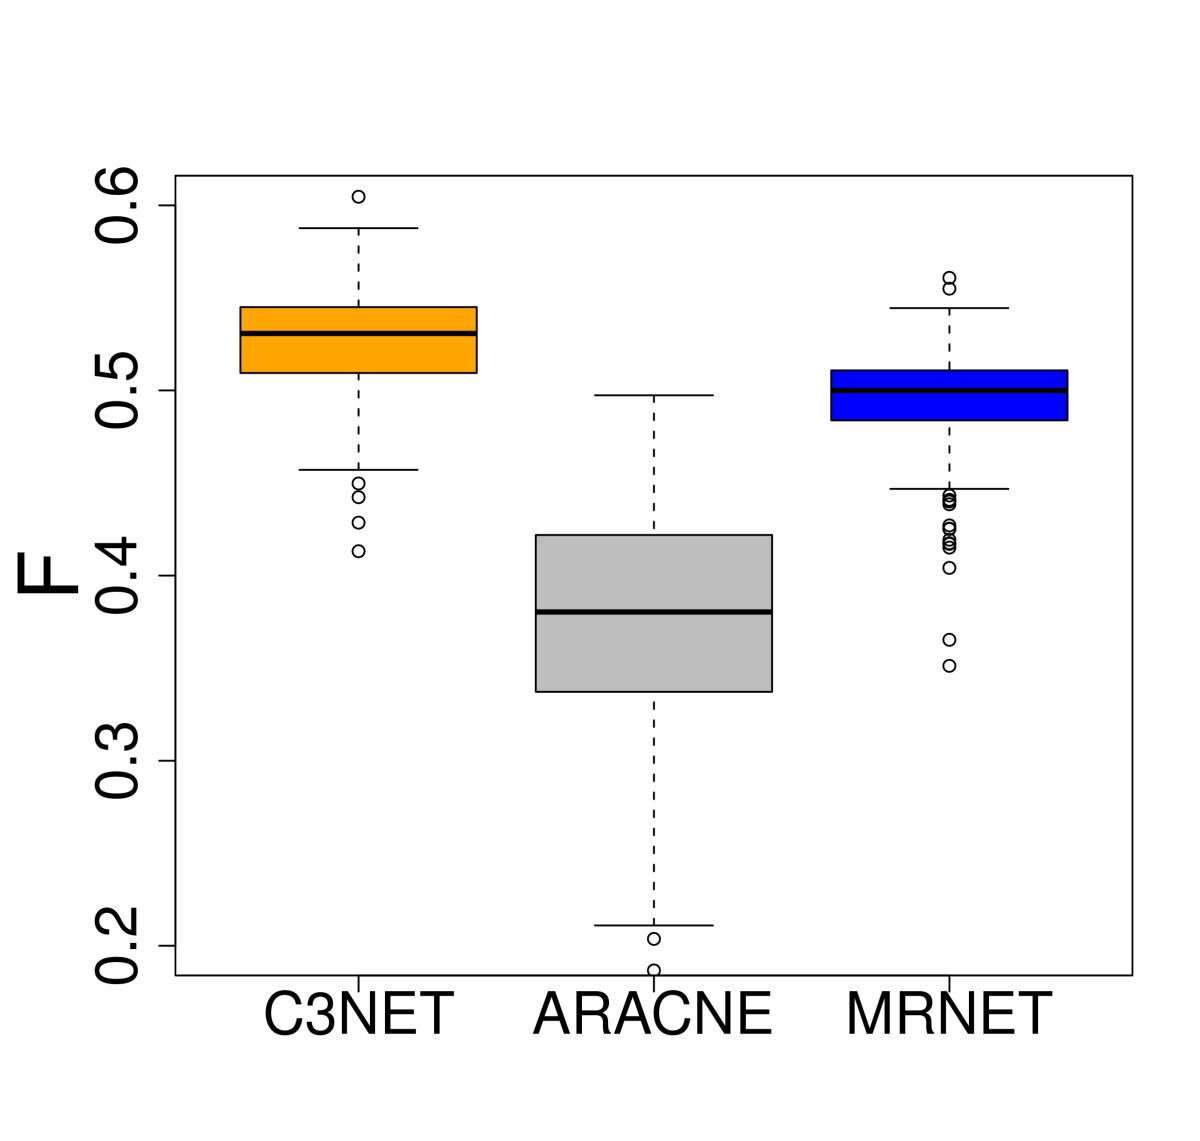 http://static-content.springer.com/image/art%3A10.1186%2F1752-0509-4-132/MediaObjects/12918_2010_Article_521_Fig4_HTML.jpg